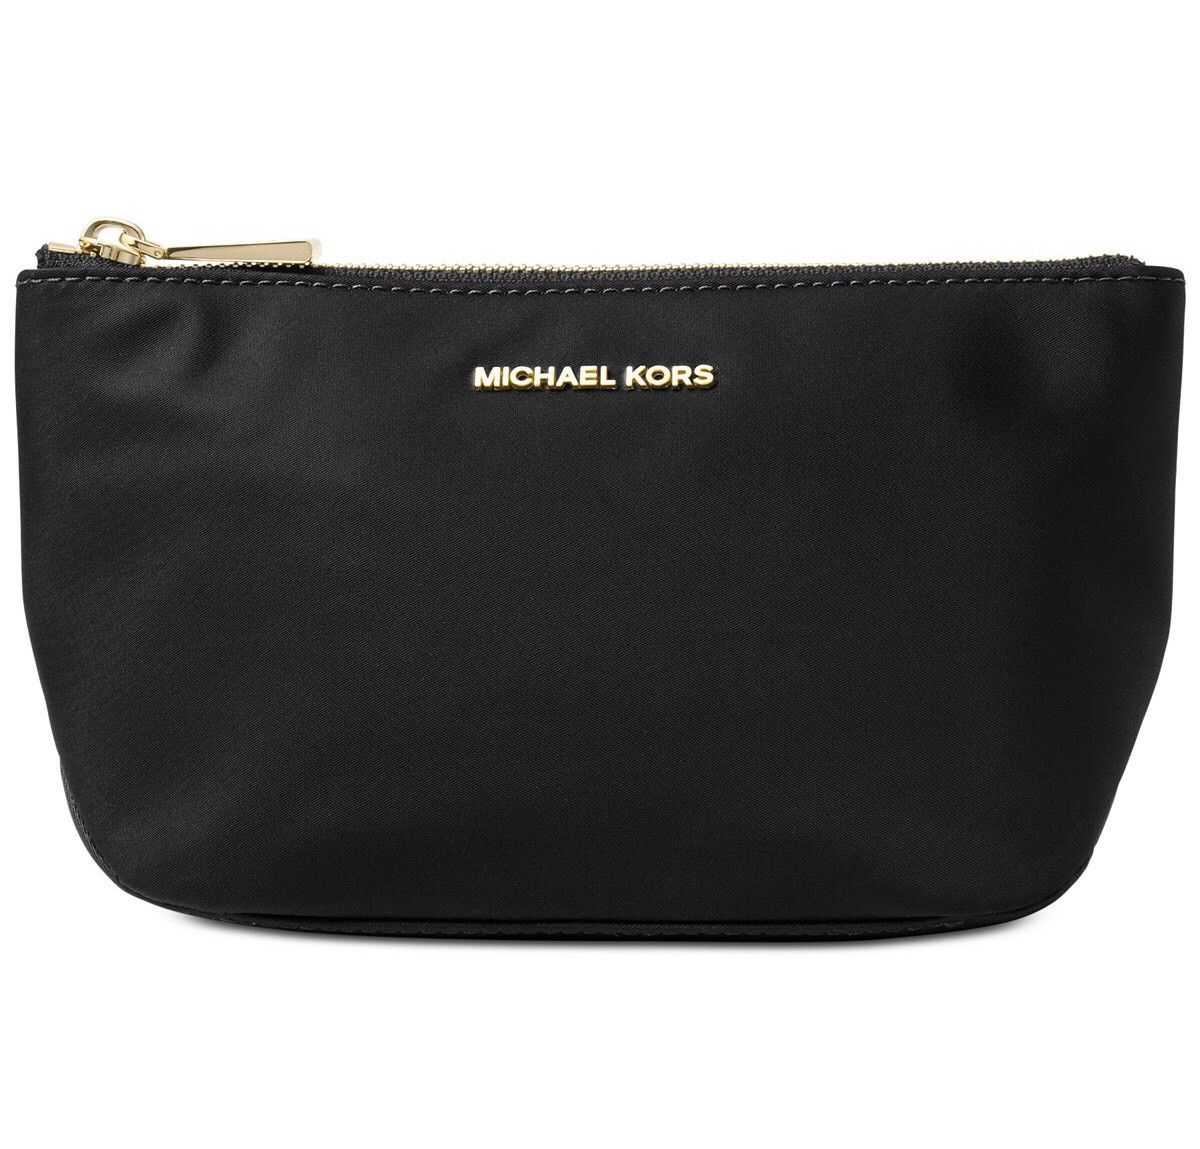 Michael Kors Penny Medium Travel Pouch Cosmetics Makeup Pouch Black # 32F7GP4T2C